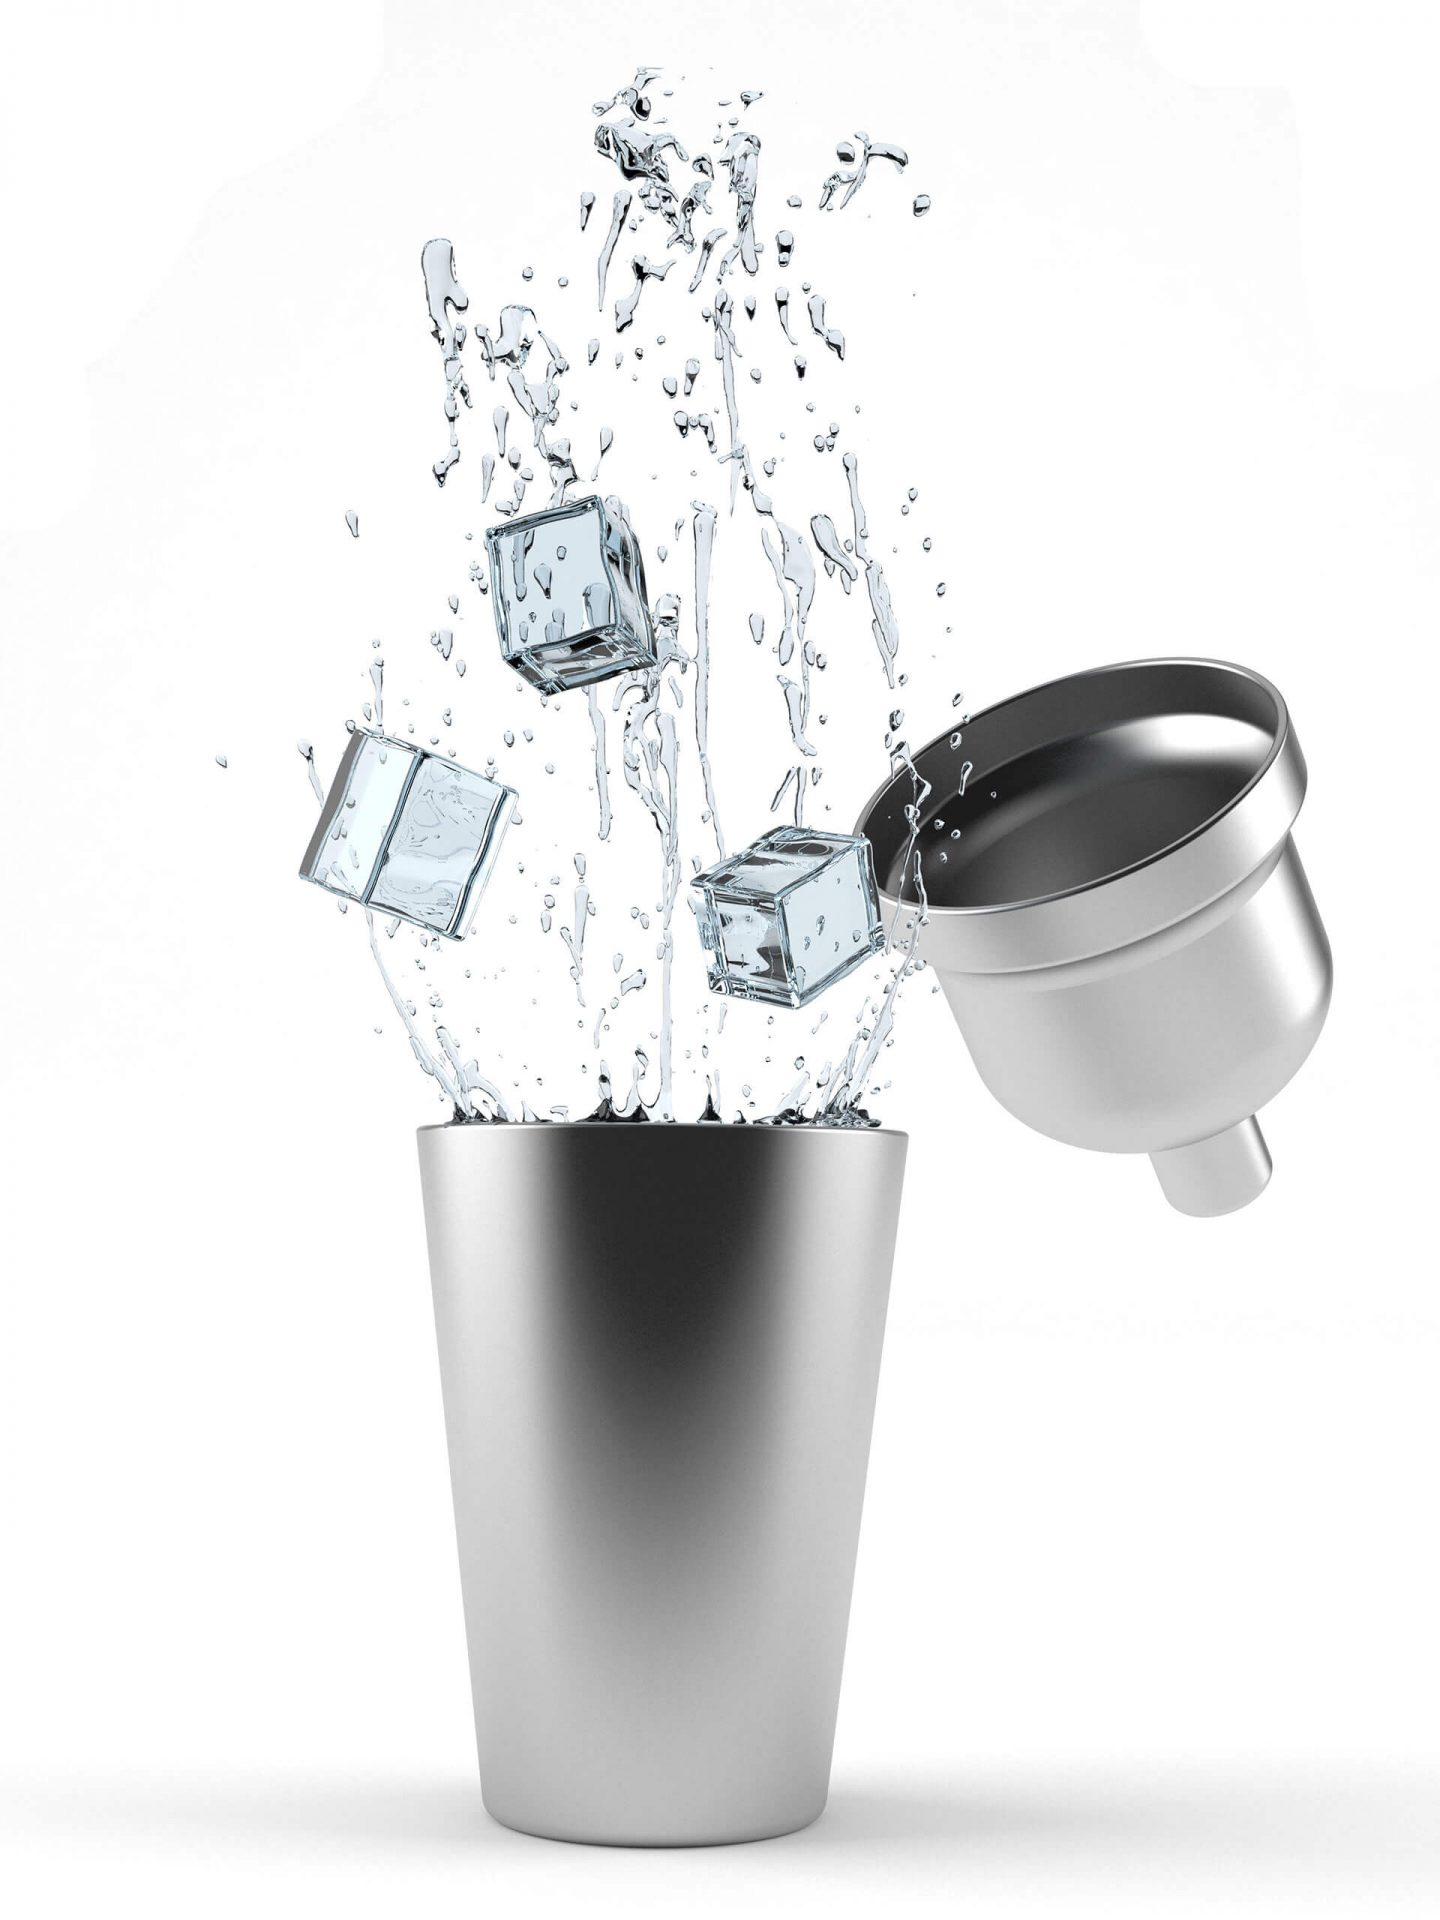 Silver cocktail shaker with ice cubes being dropped in.